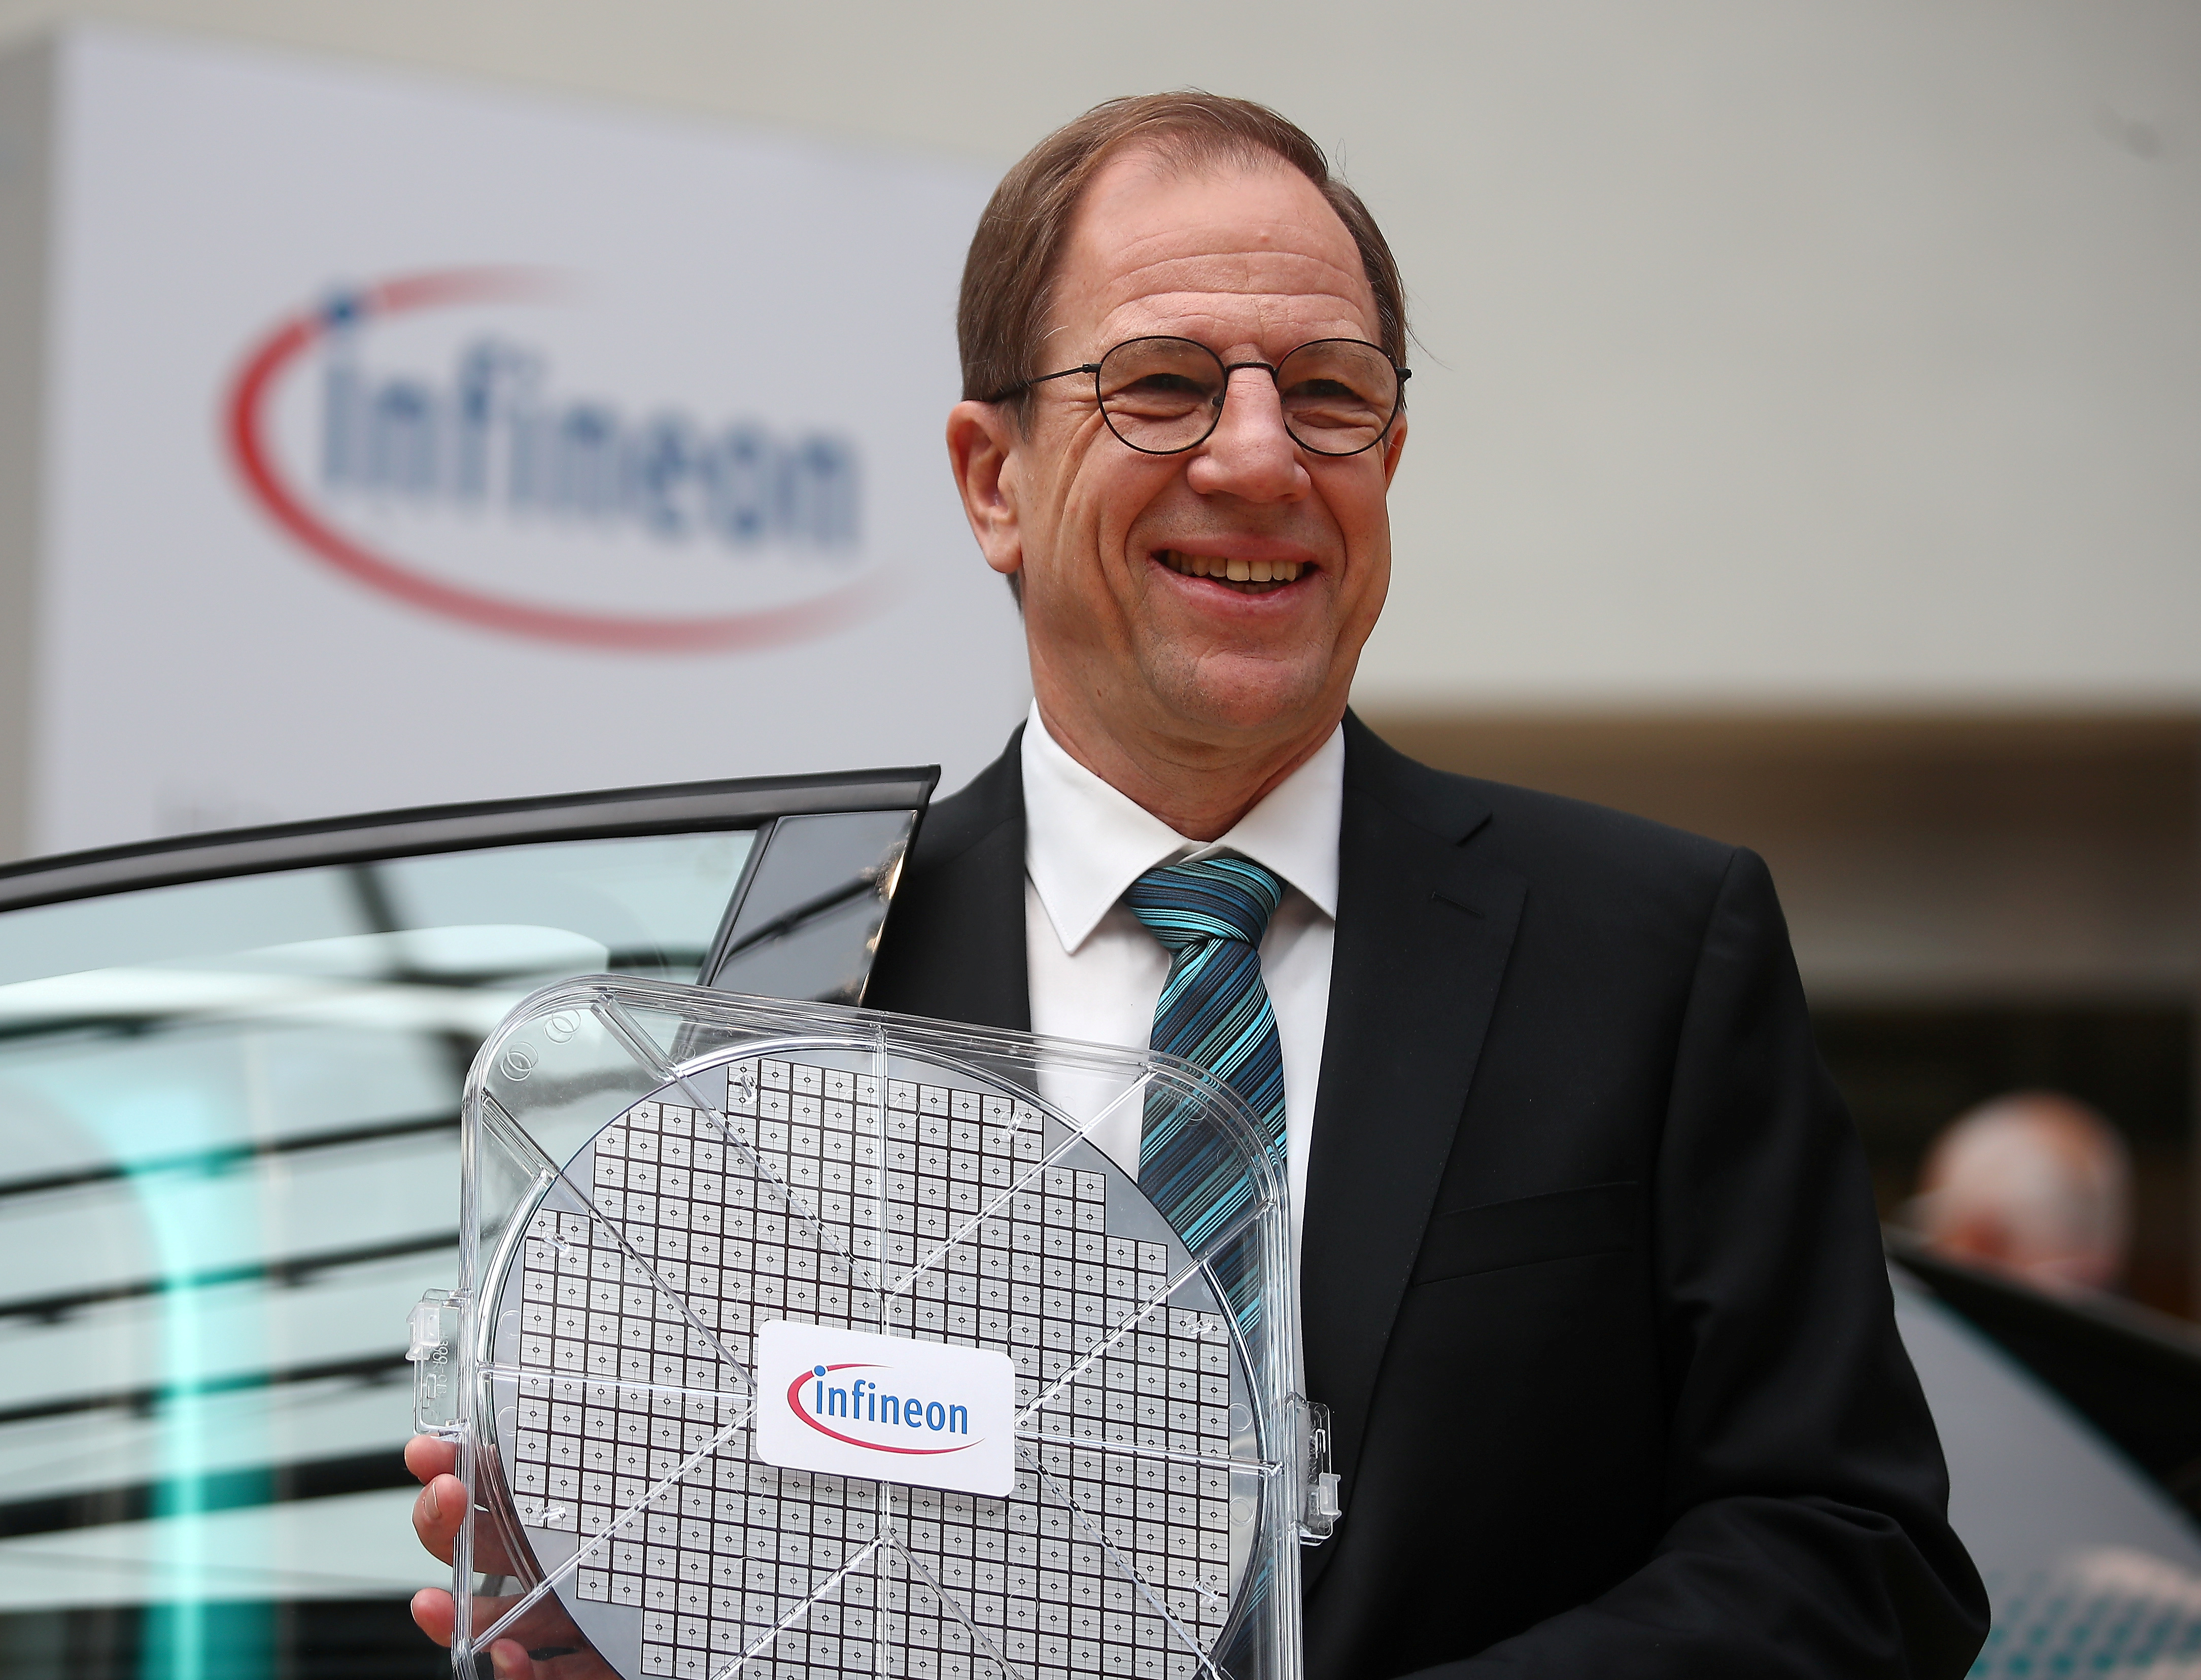 Reinhard Ploss, CEO of German semiconductor manufacturer Infineon poses before the company's annual shareholder meeting in Munich, Germany, February 20, 2020   REUTERS/Michael Dalder/File Photo